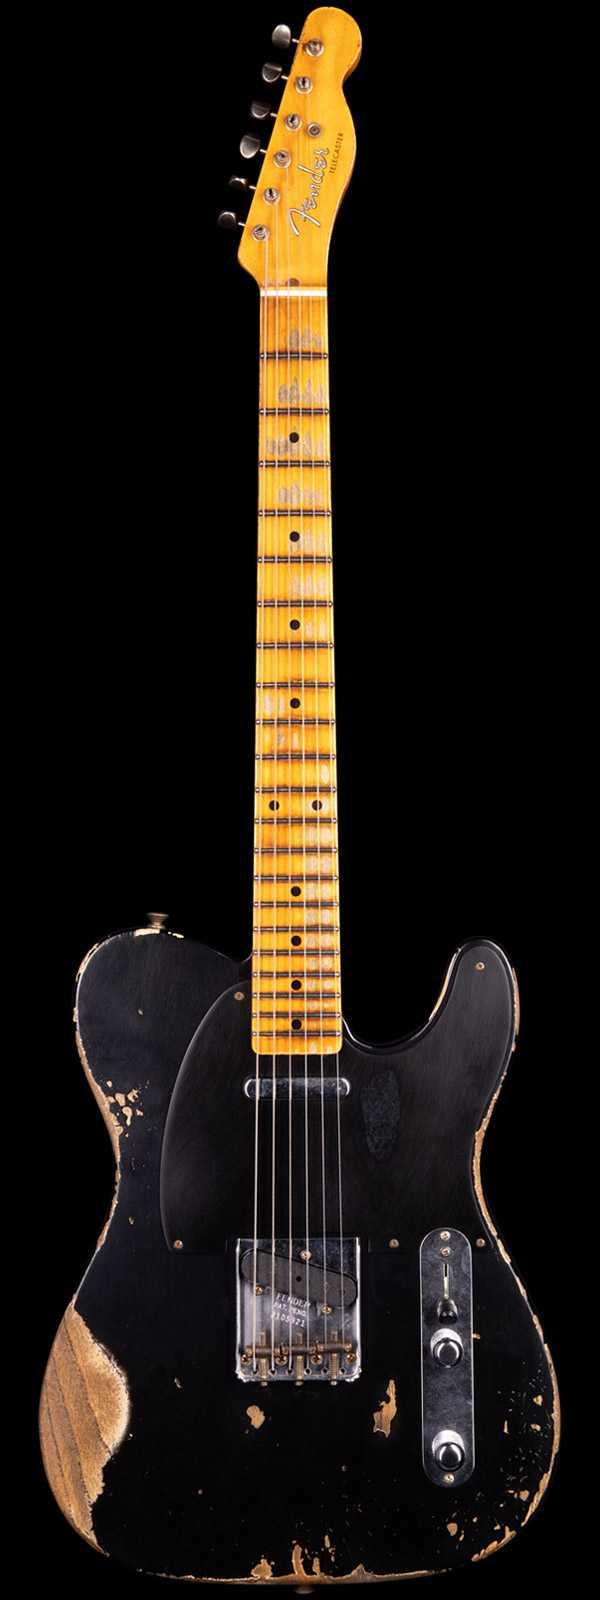 Fender Custom Shop 1952 Telecaster Heavy Relic Black Streamline U Neck